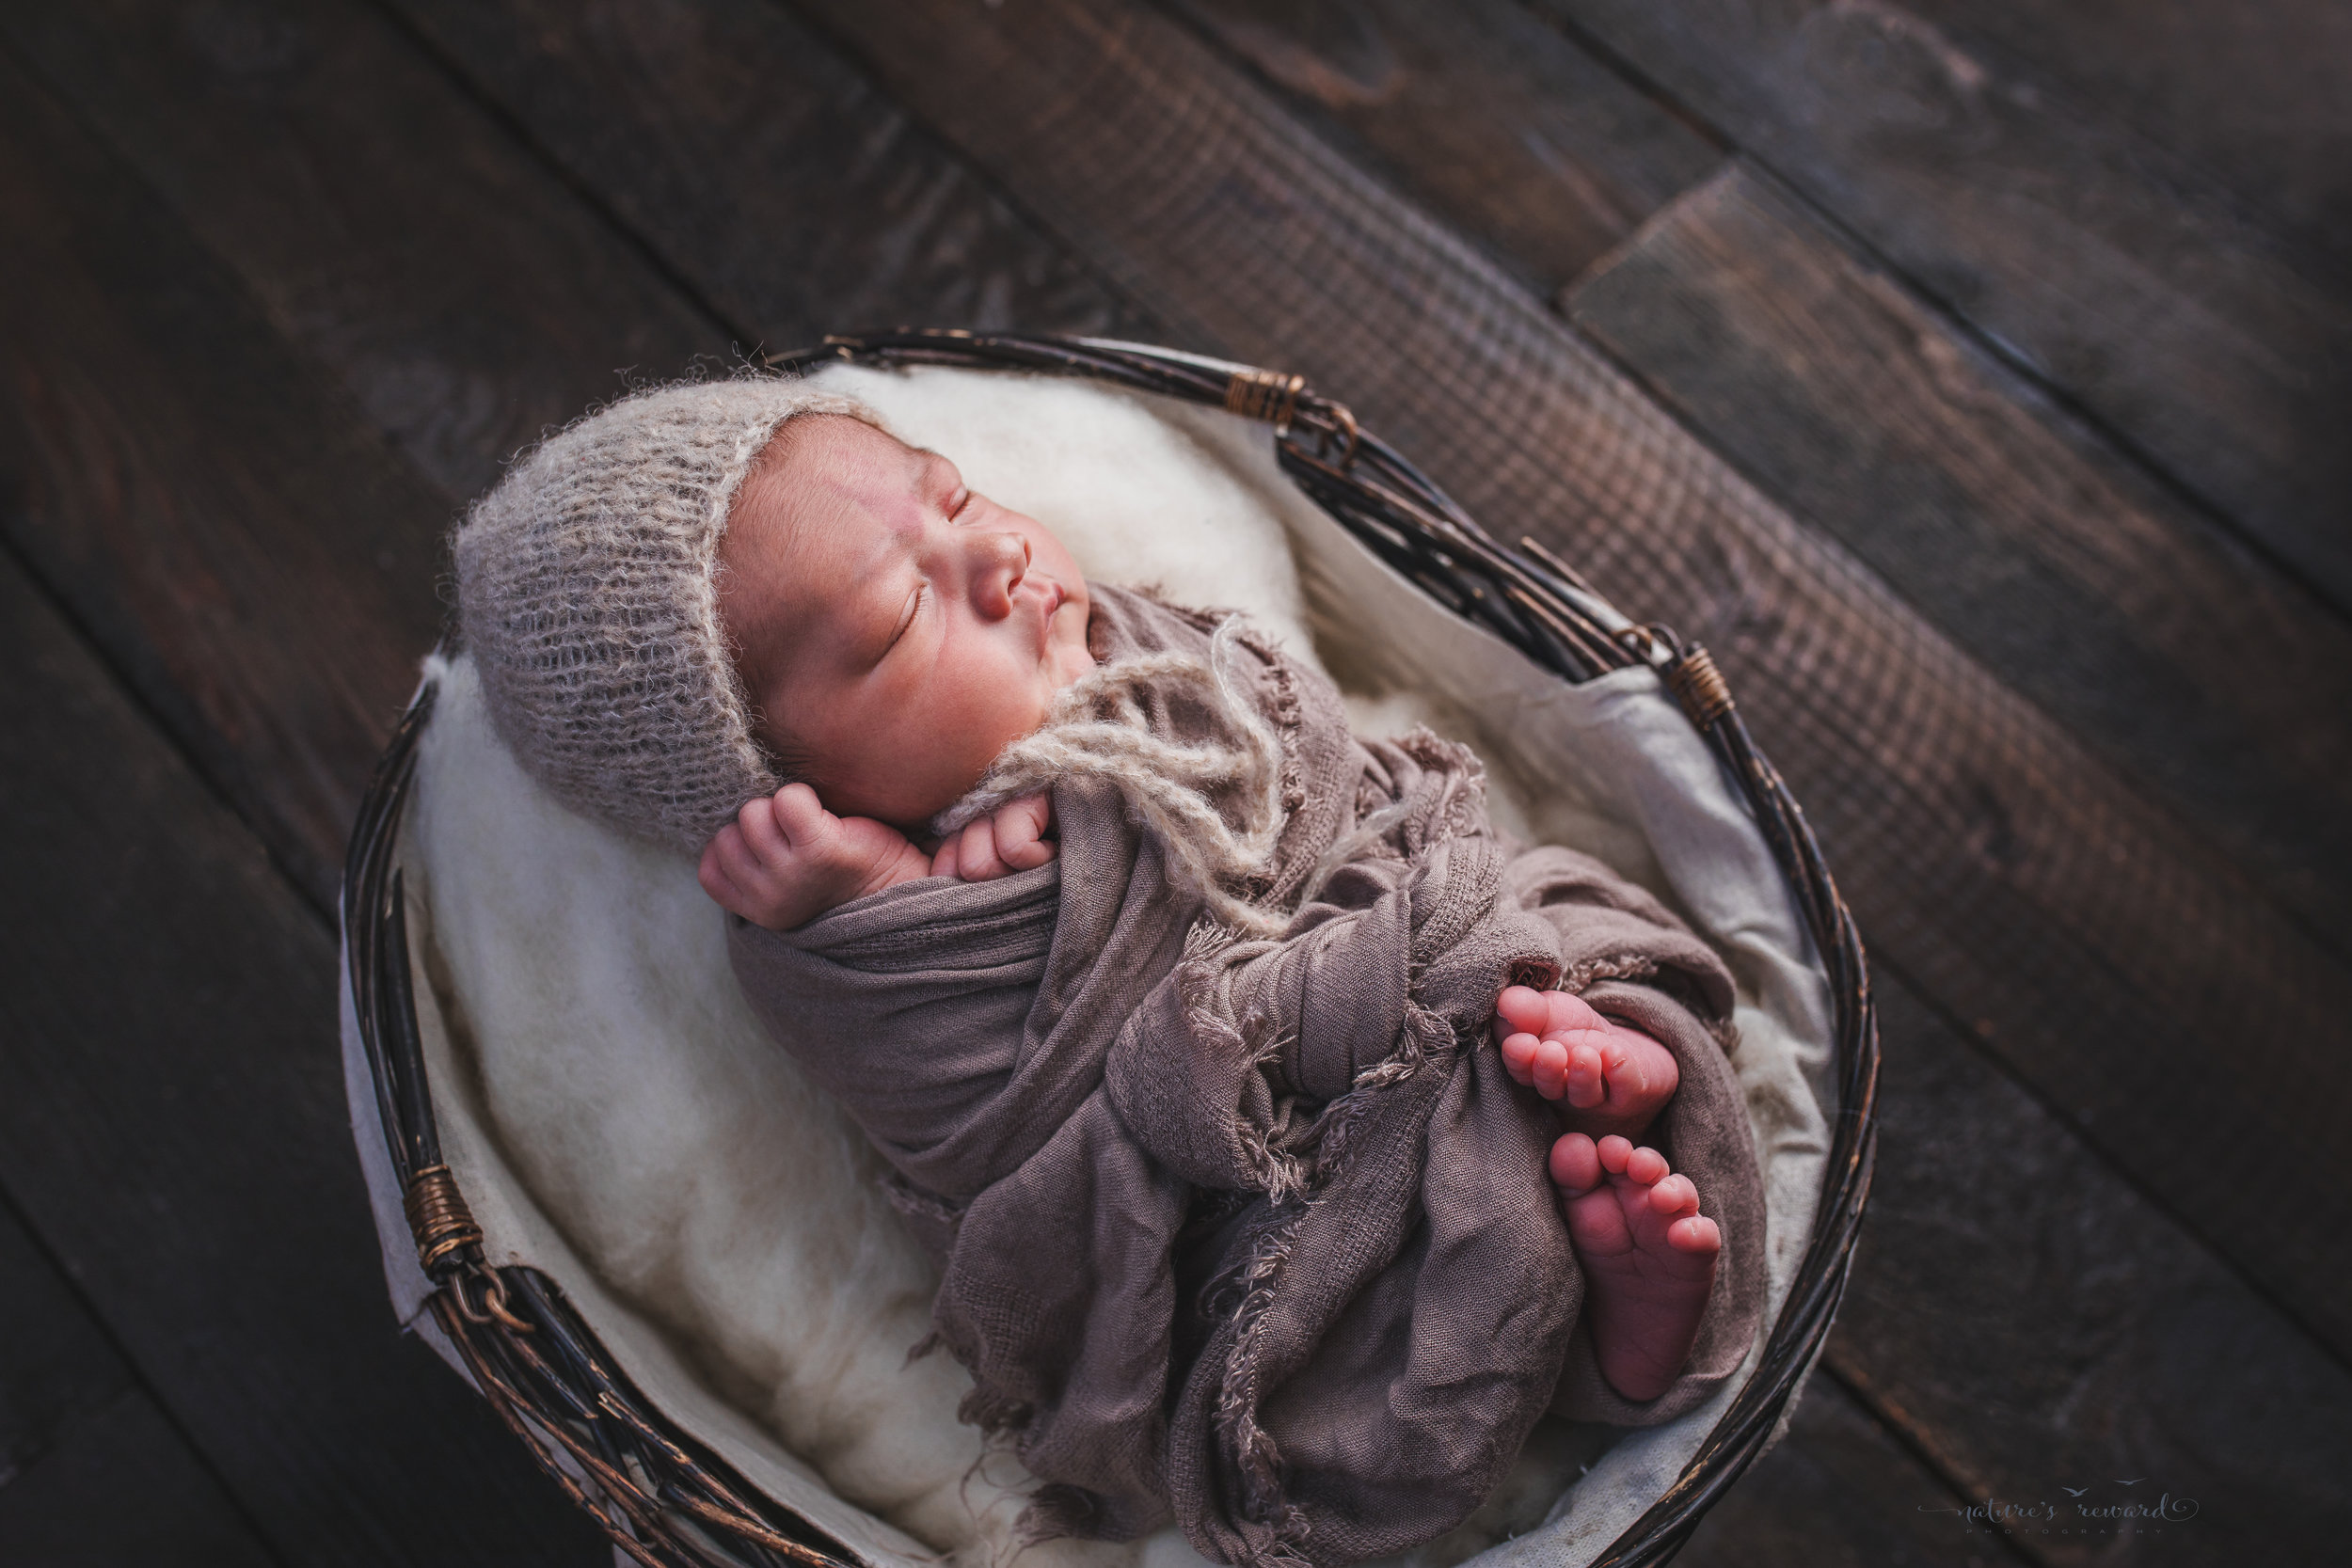 Newborn baby boy in a basket swaddled in tan wearing a tan bonnet with hands and feet out on a real wood floor, a portrait by Nature's Reward Photography